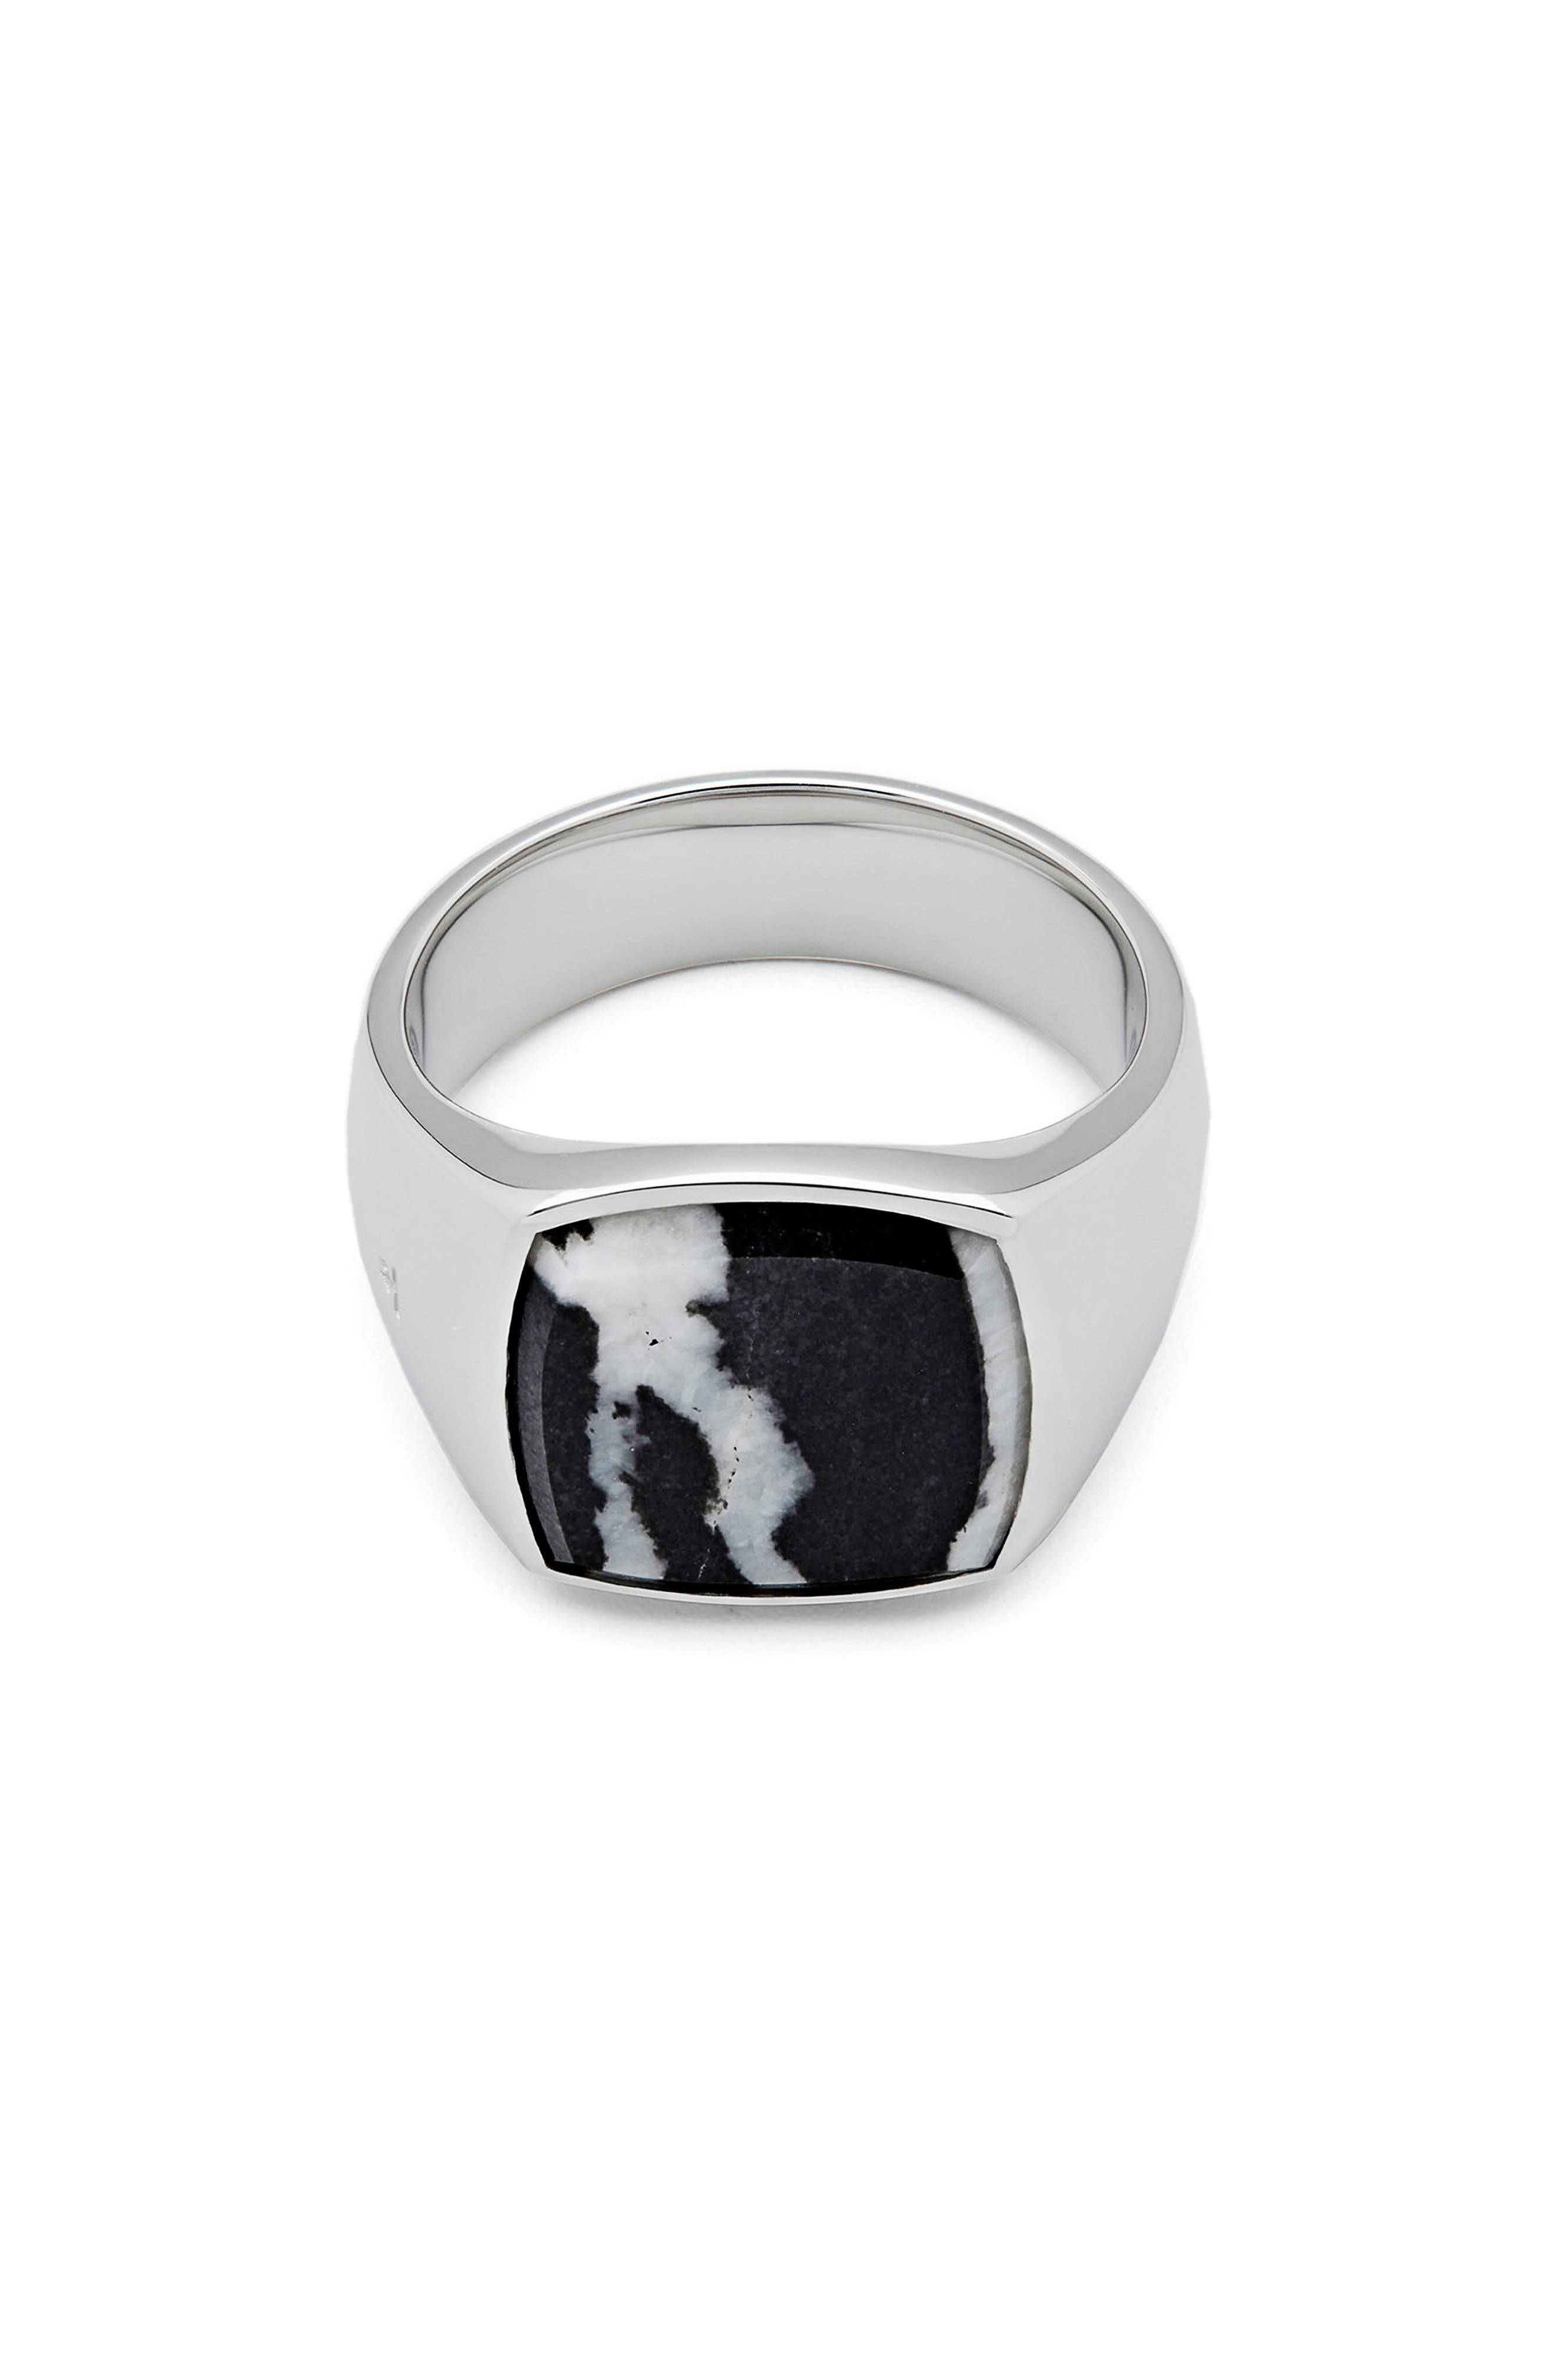 Women's Zebra Marble Cushion Signet Ring,                         Main,                         color, 925 Sterling Silver